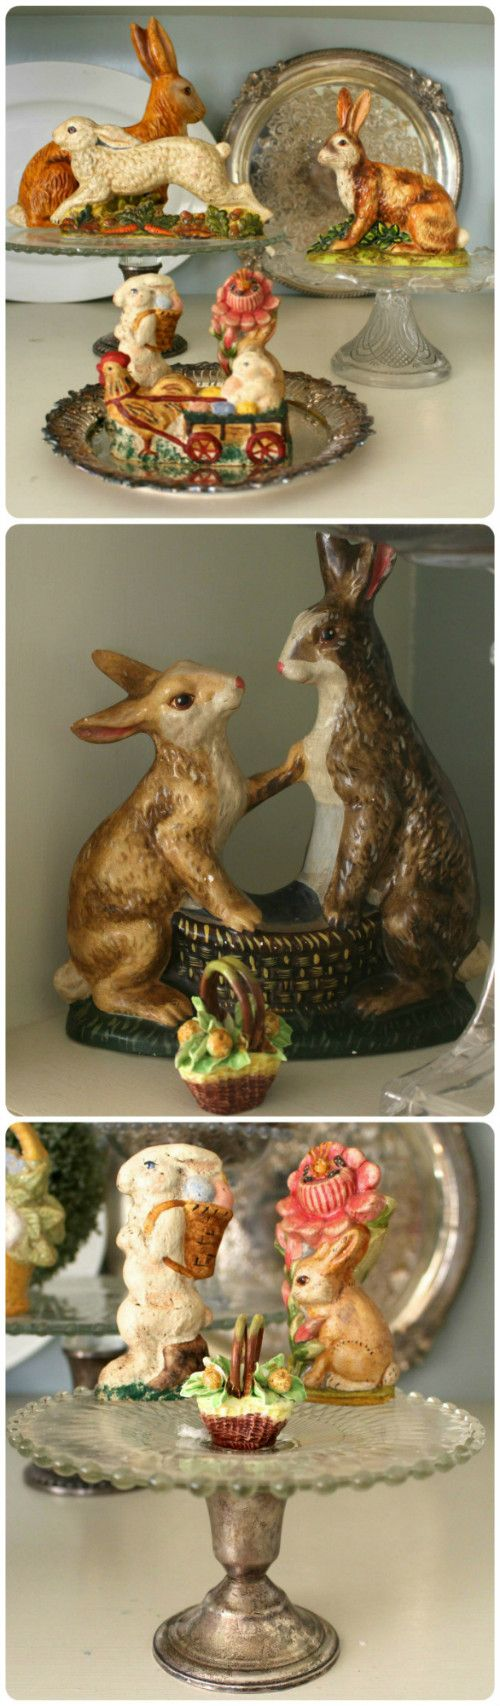 Easter Decorating ideas plus lots of vintage and antiques for sale online at Vintage American Home